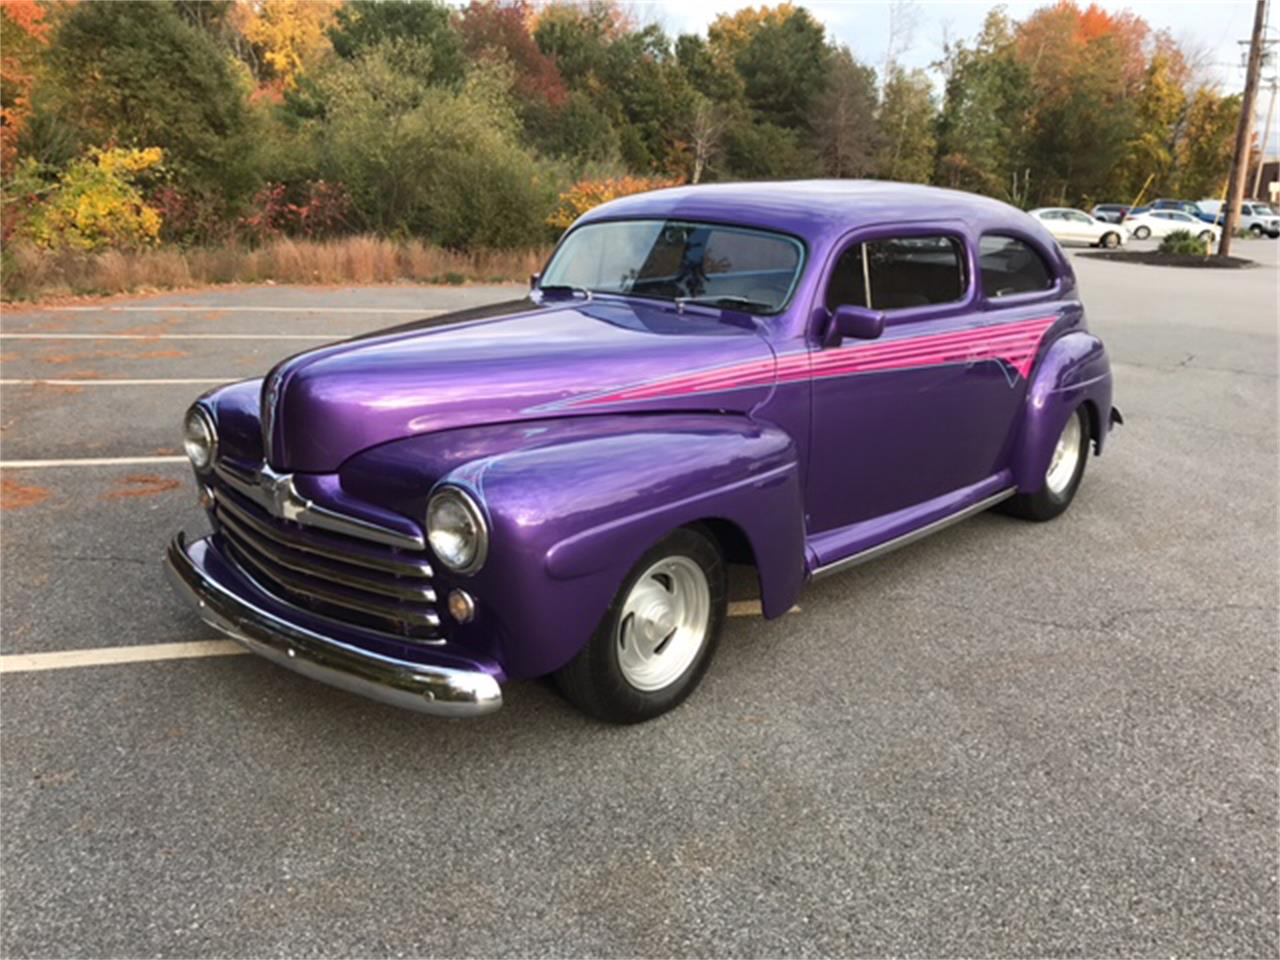 Large Picture of '46 Ford Deluxe located in Massachusetts - $39,900.00 Offered by B & S Enterprises - K611